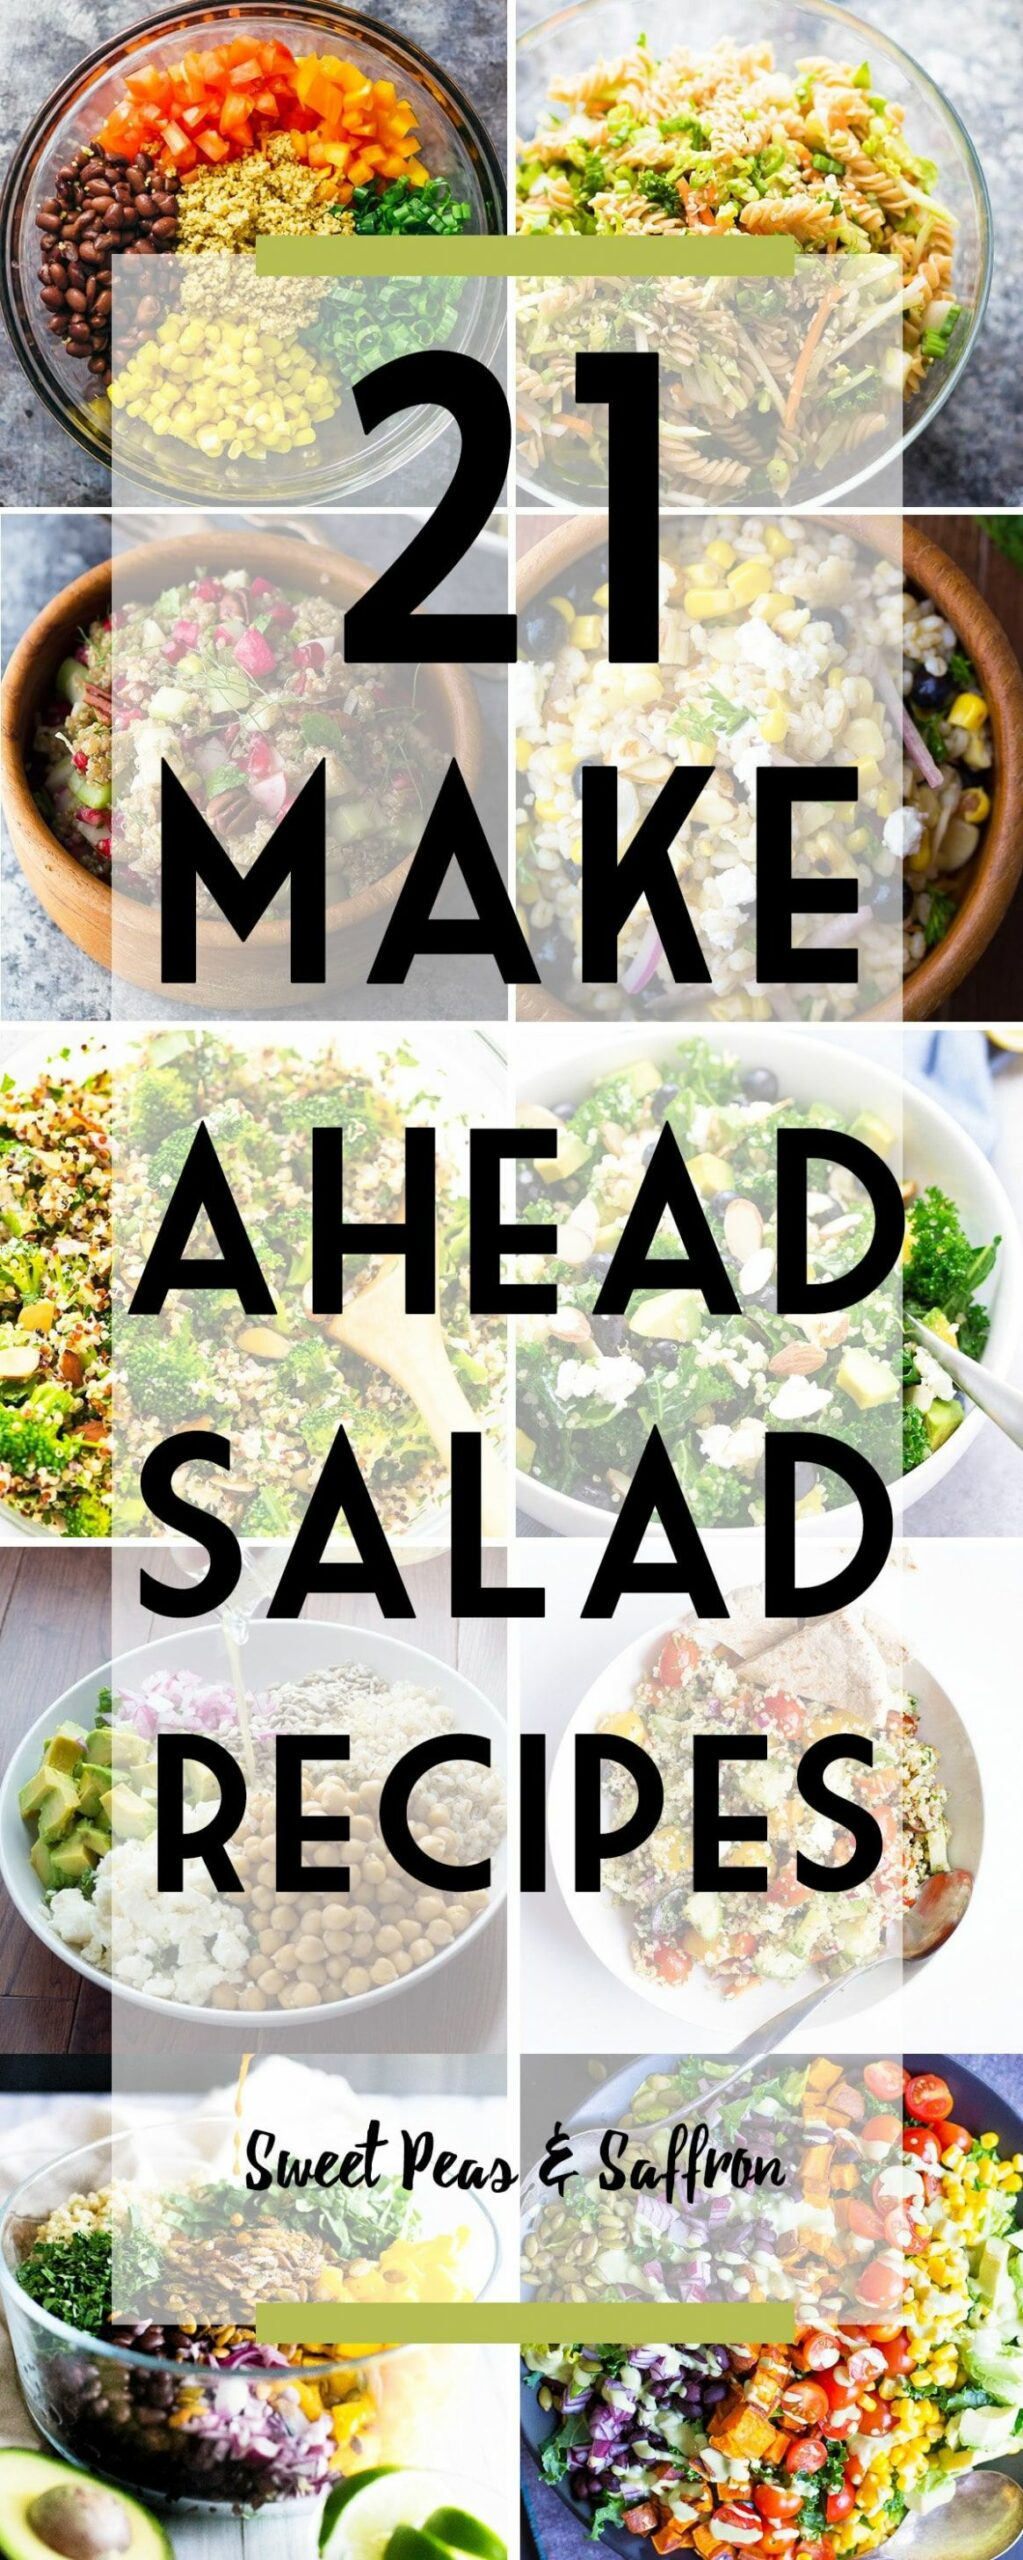 12 Make Ahead Salads Perfect For Meal Prep | Sweet Peas and Saffron - Salad Recipes You Can Make Ahead